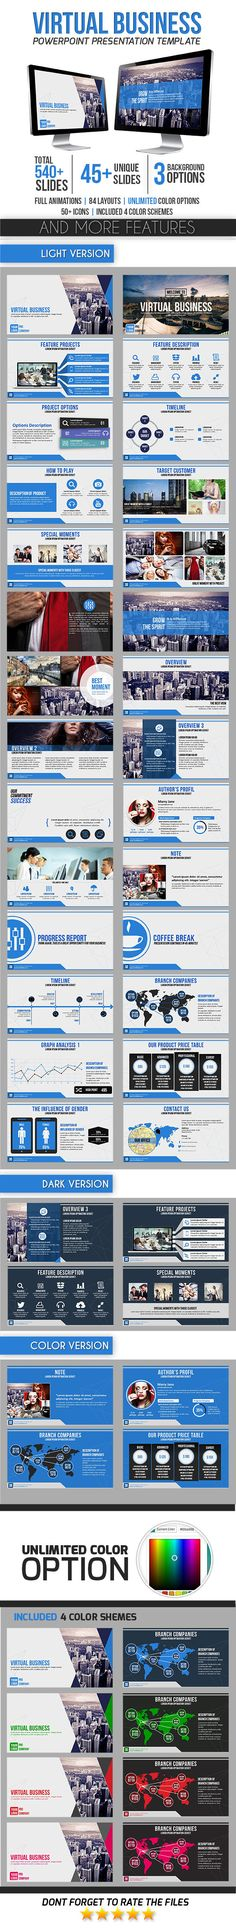 Winca Multipurpose Business Power Point Template Power point - Sales Presentation Template